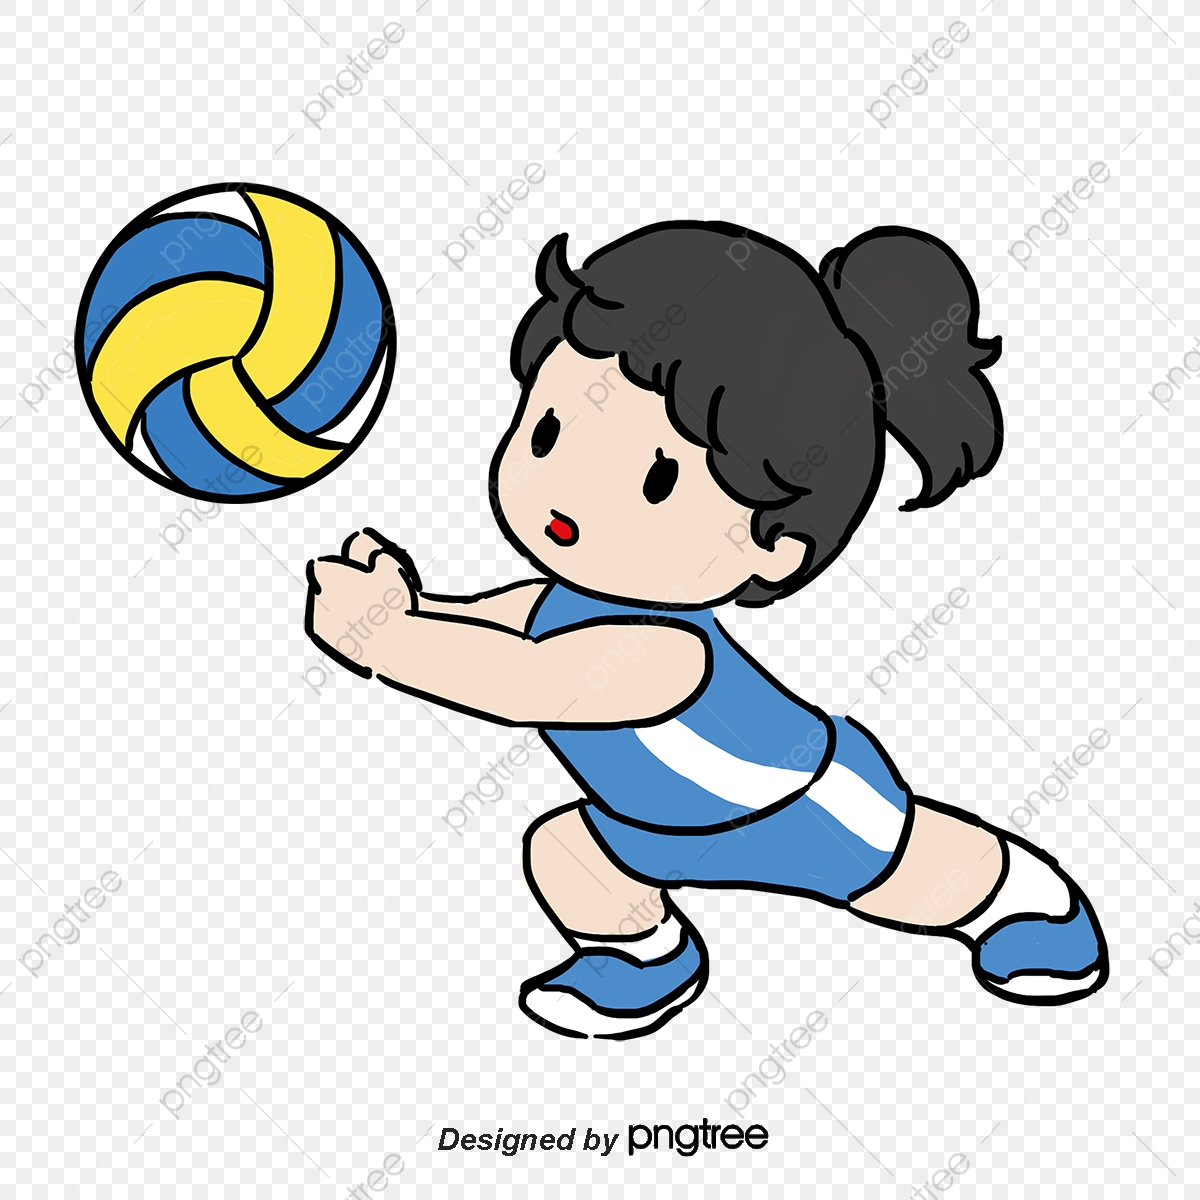 Pinkvolleyball Transparent Background Volleyball Png Clip Art Library